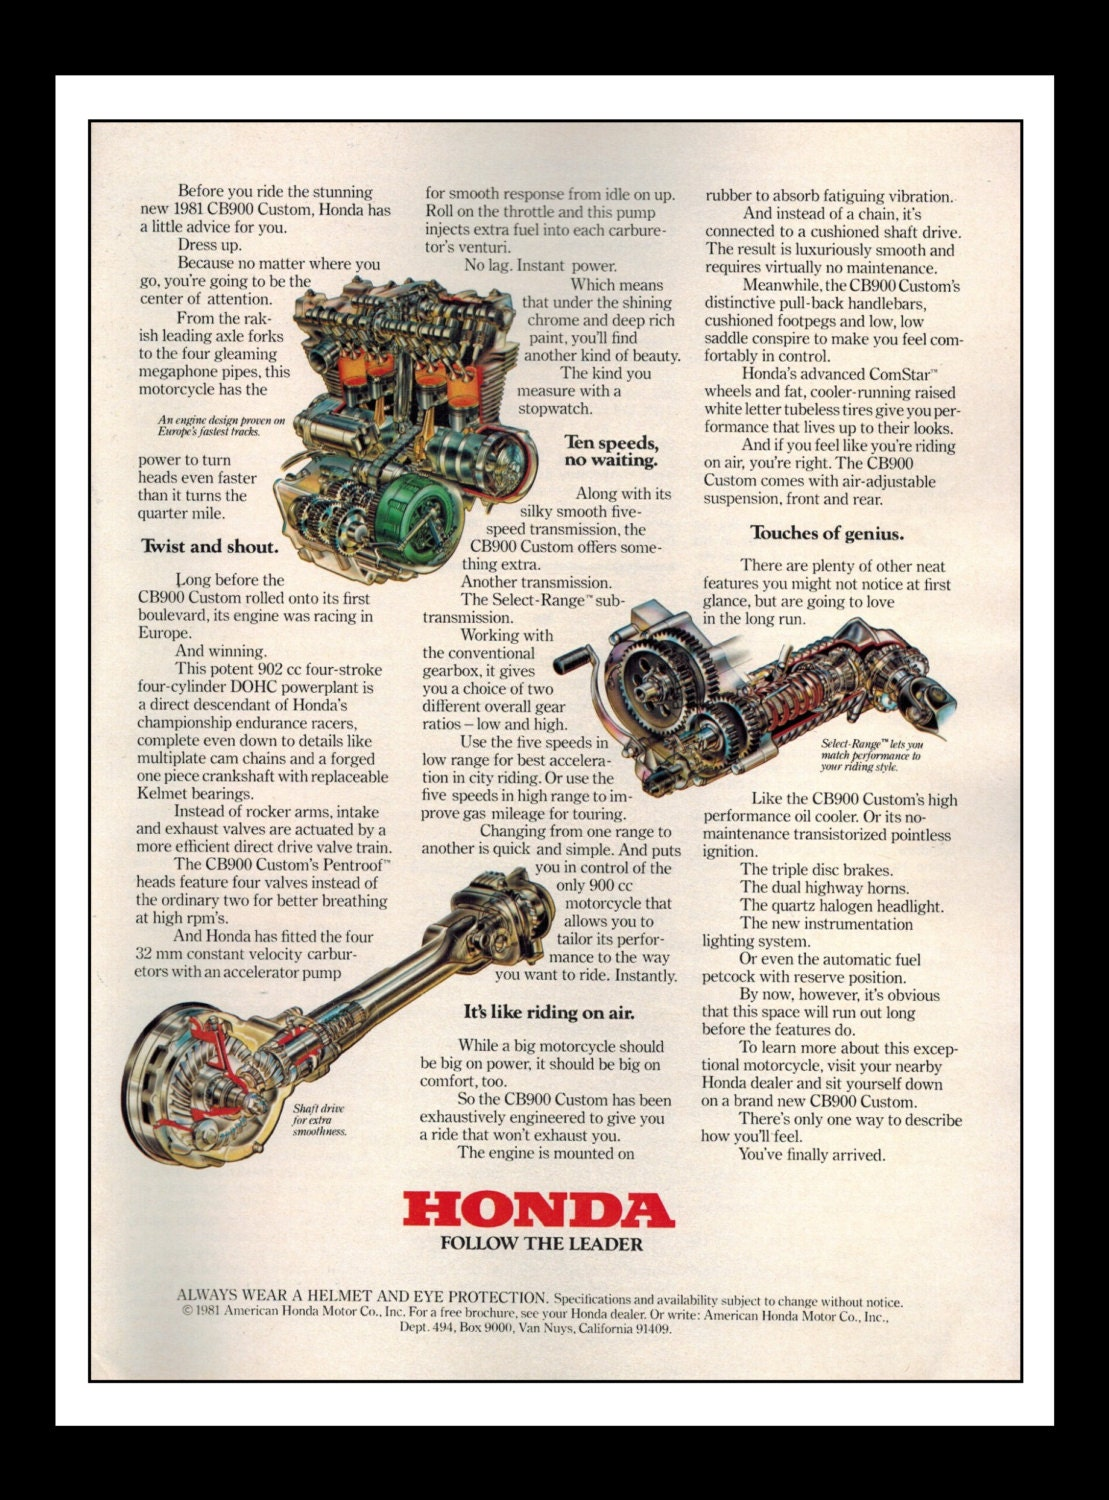 Vintage Print Ad March 1981 Honda Motorcycle Follow Etsy Engine Specifications Zoom